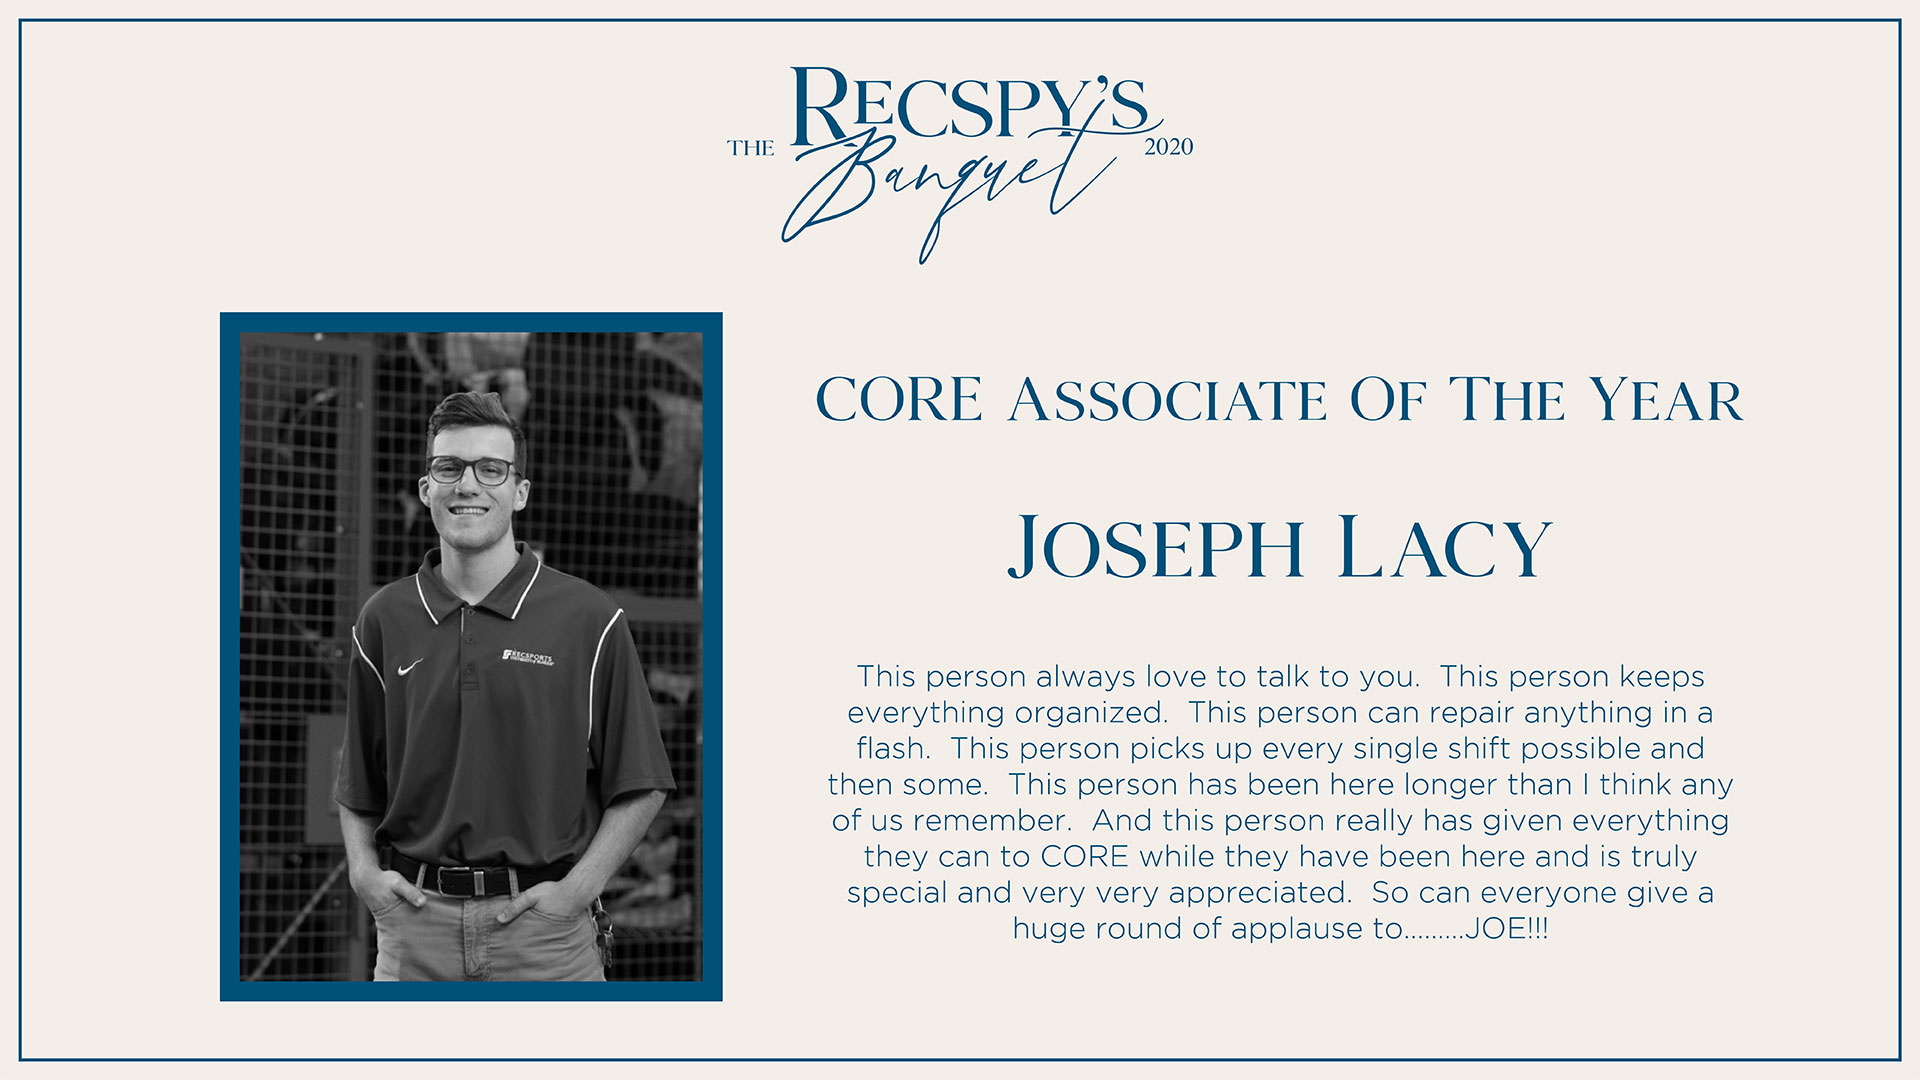 Joseph Lacy: CORE Associate of the Year